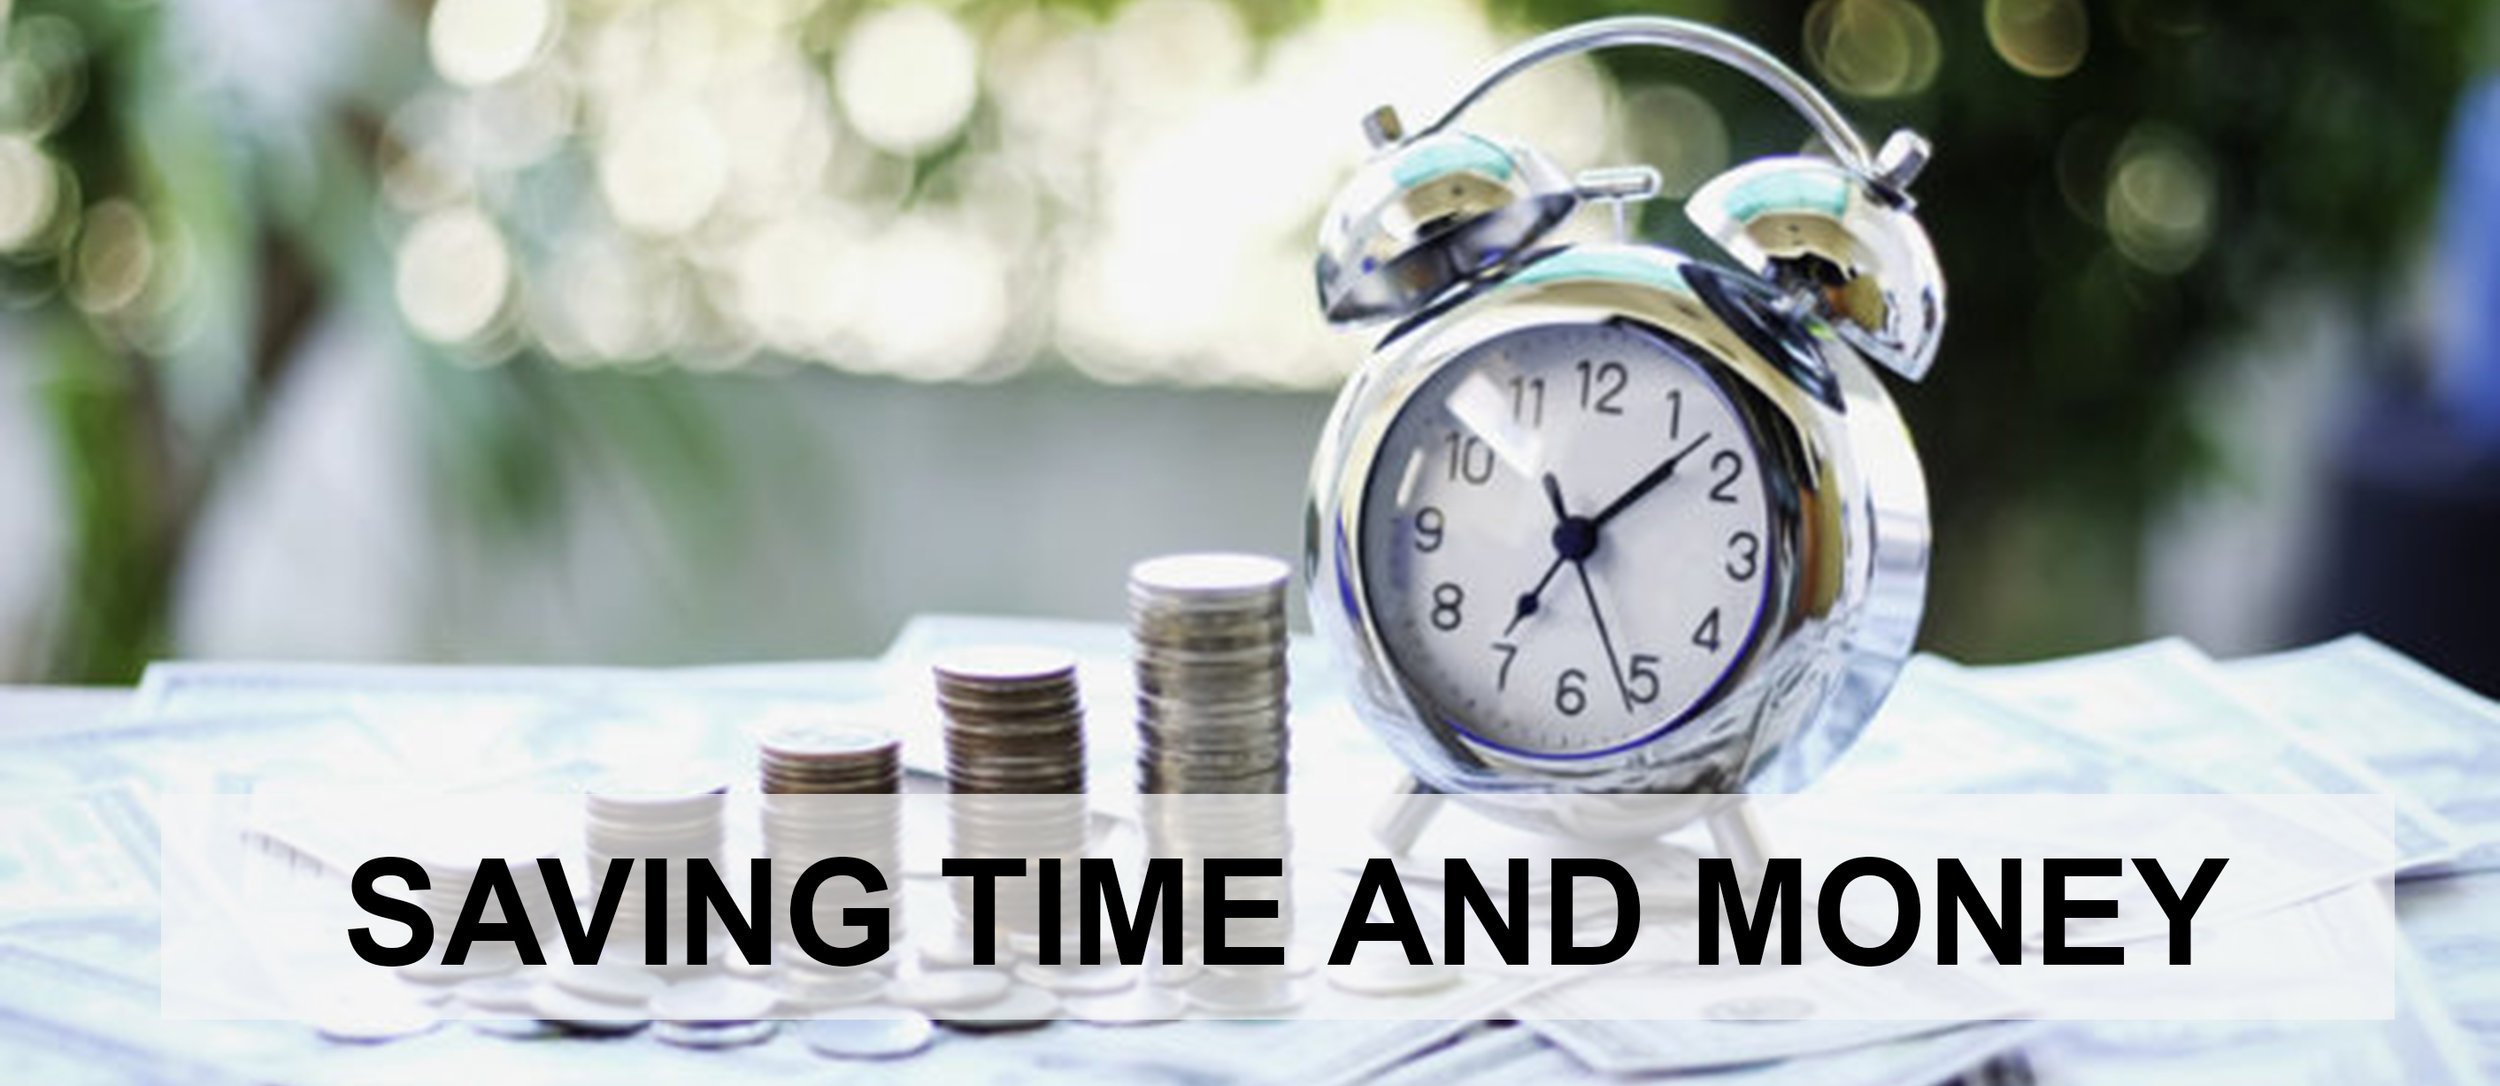 Time-and-Money alarm clock a.jpg